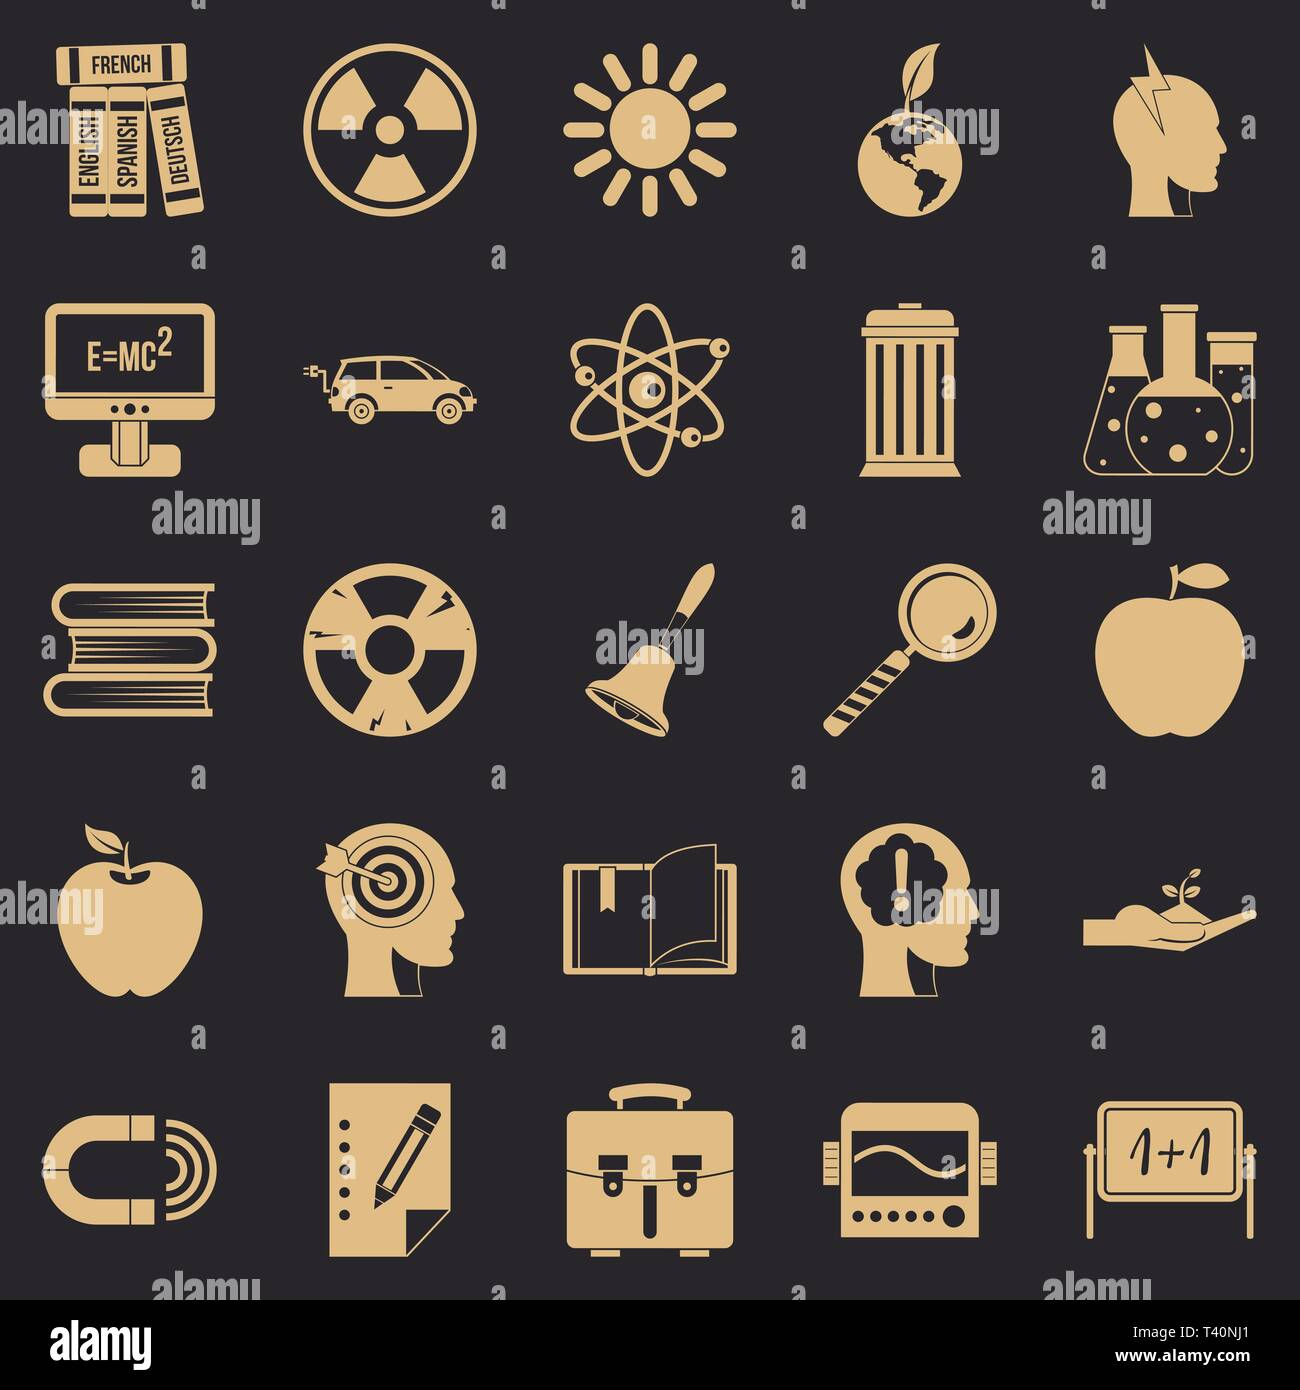 Discoveries icons set, simple style - Stock Vector